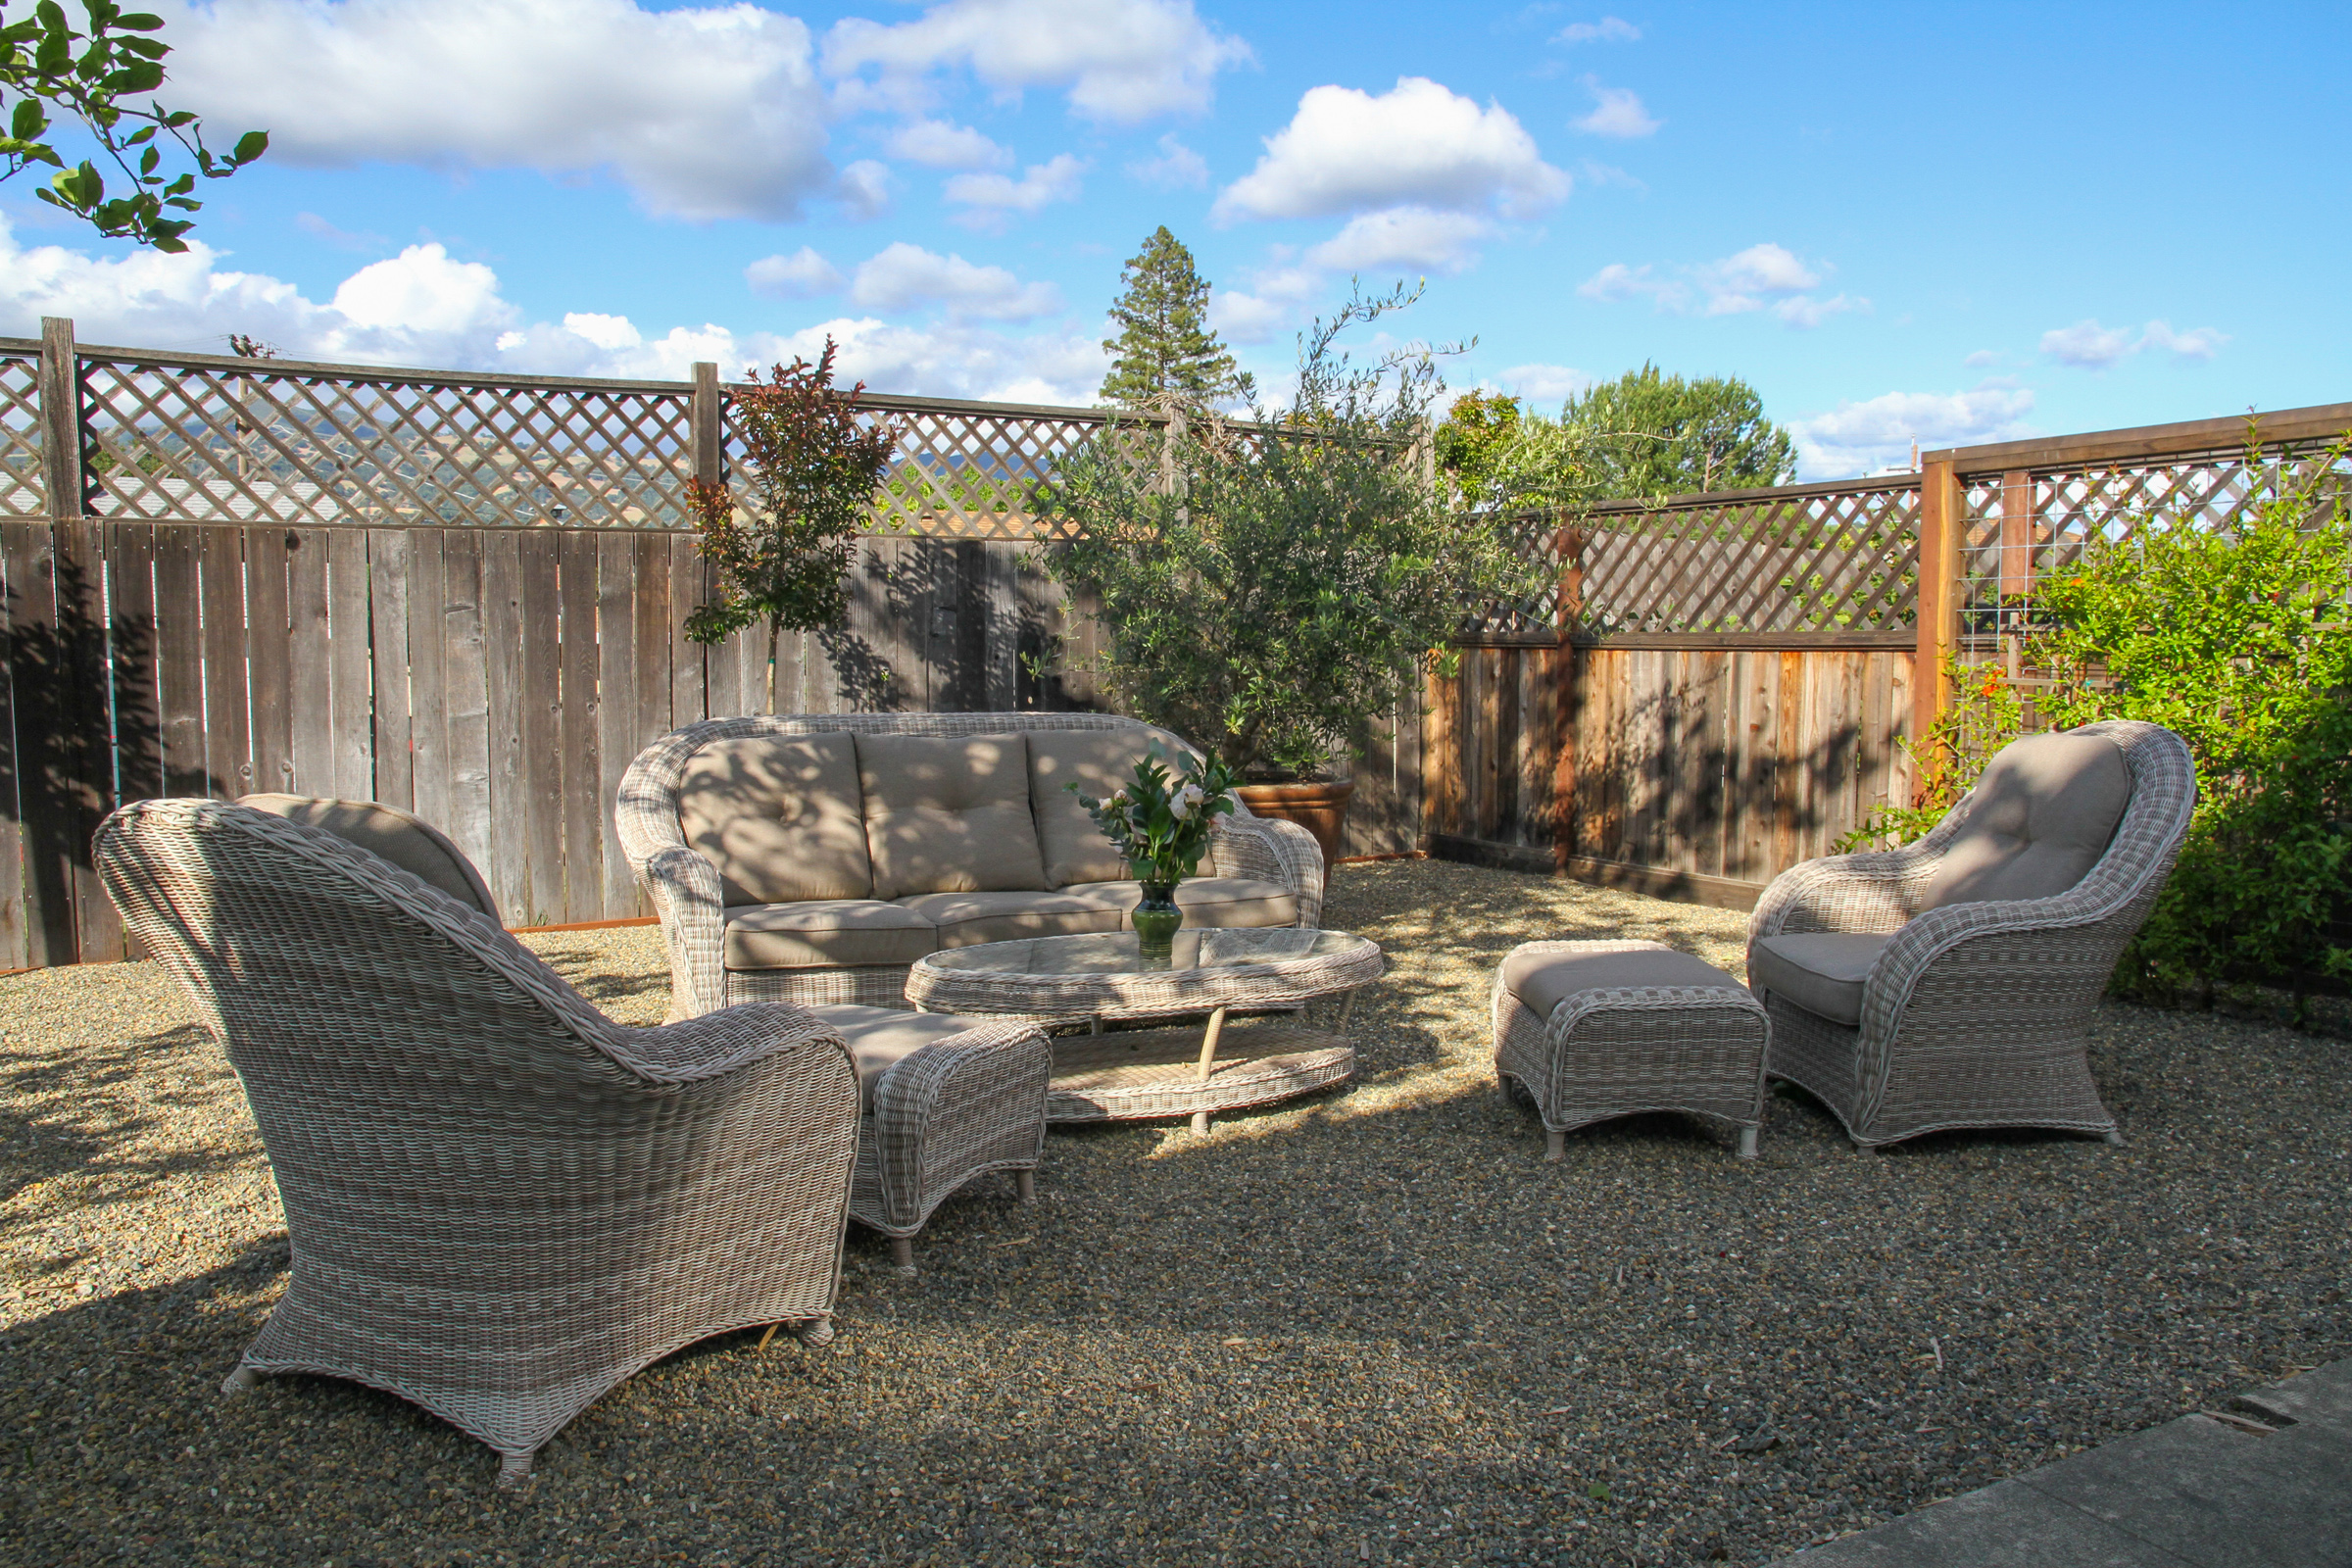 Private yard outdoor area.